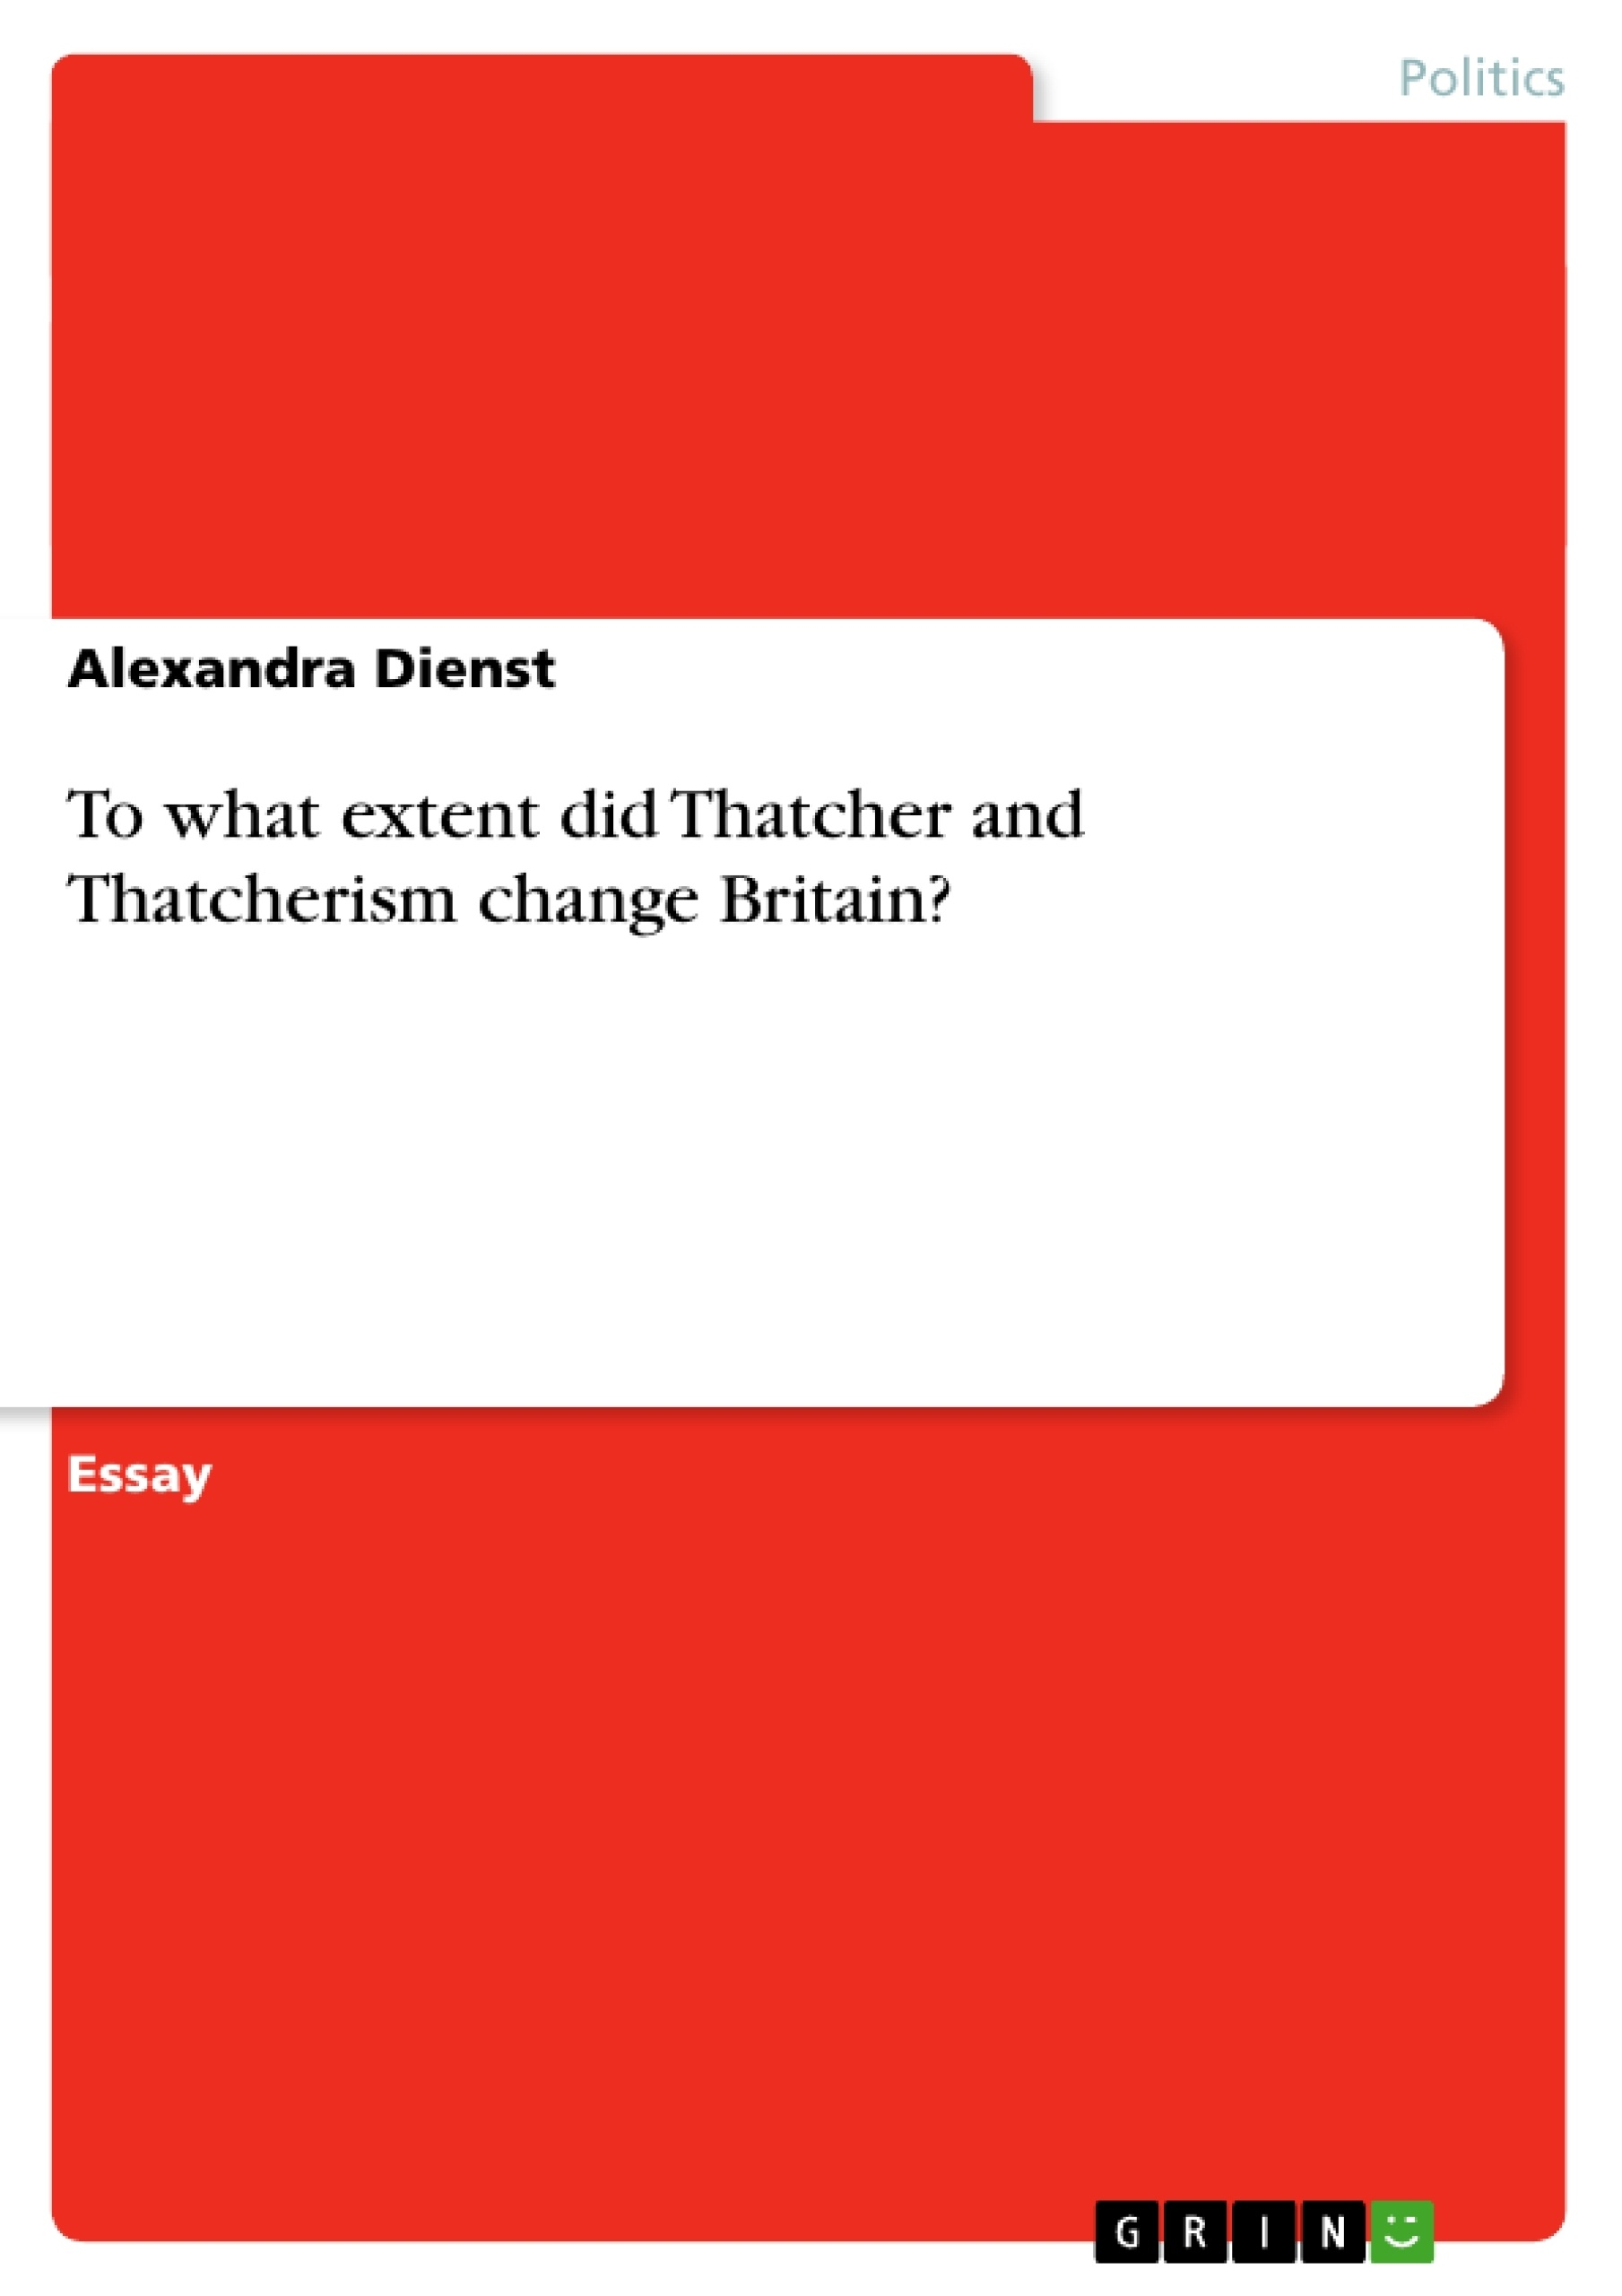 Title: To what extent did Thatcher and Thatcherism change Britain?